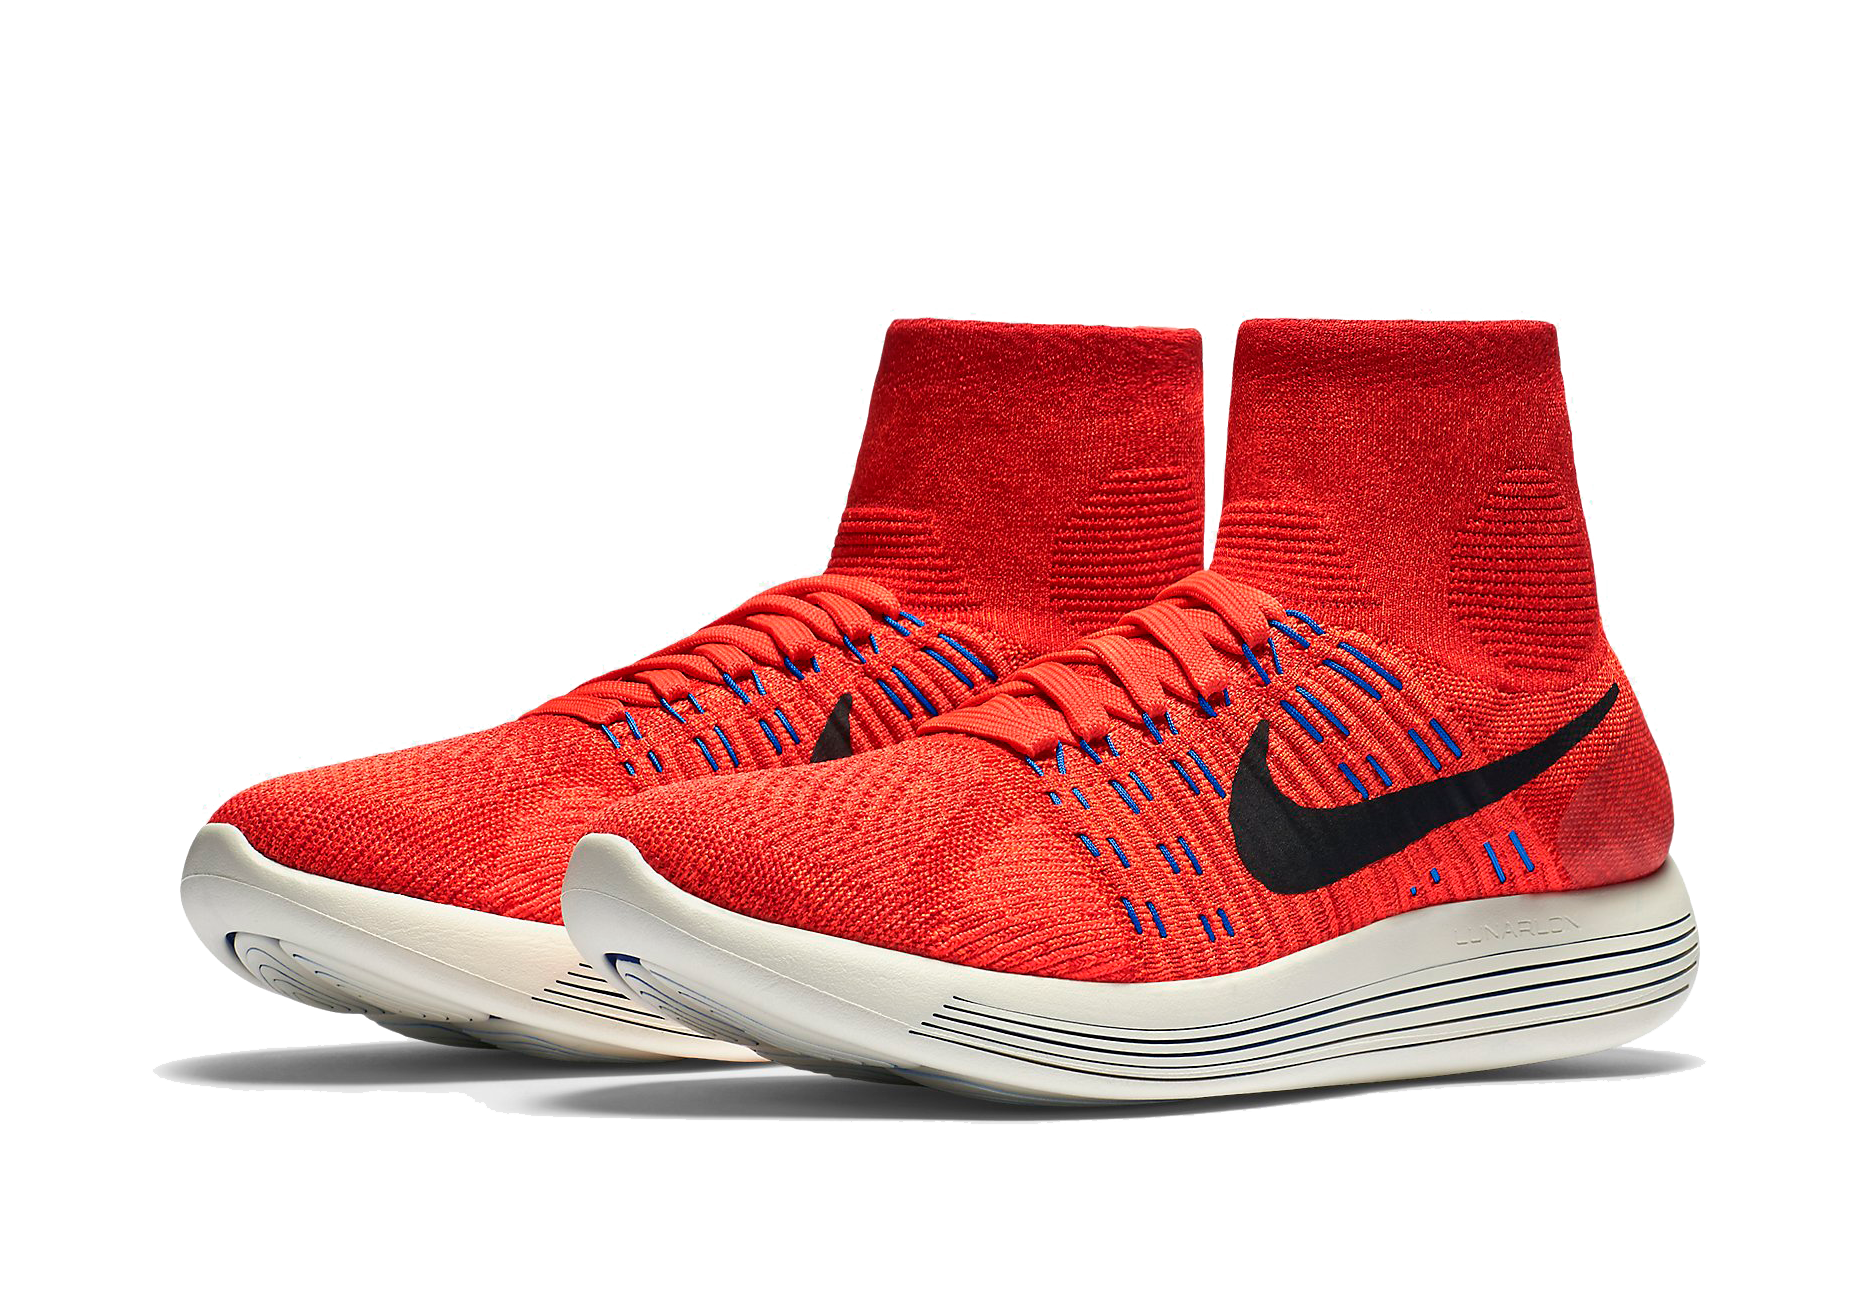 premium selection 02921 37821 Nike LUNAREPIC FLYKNIT Review